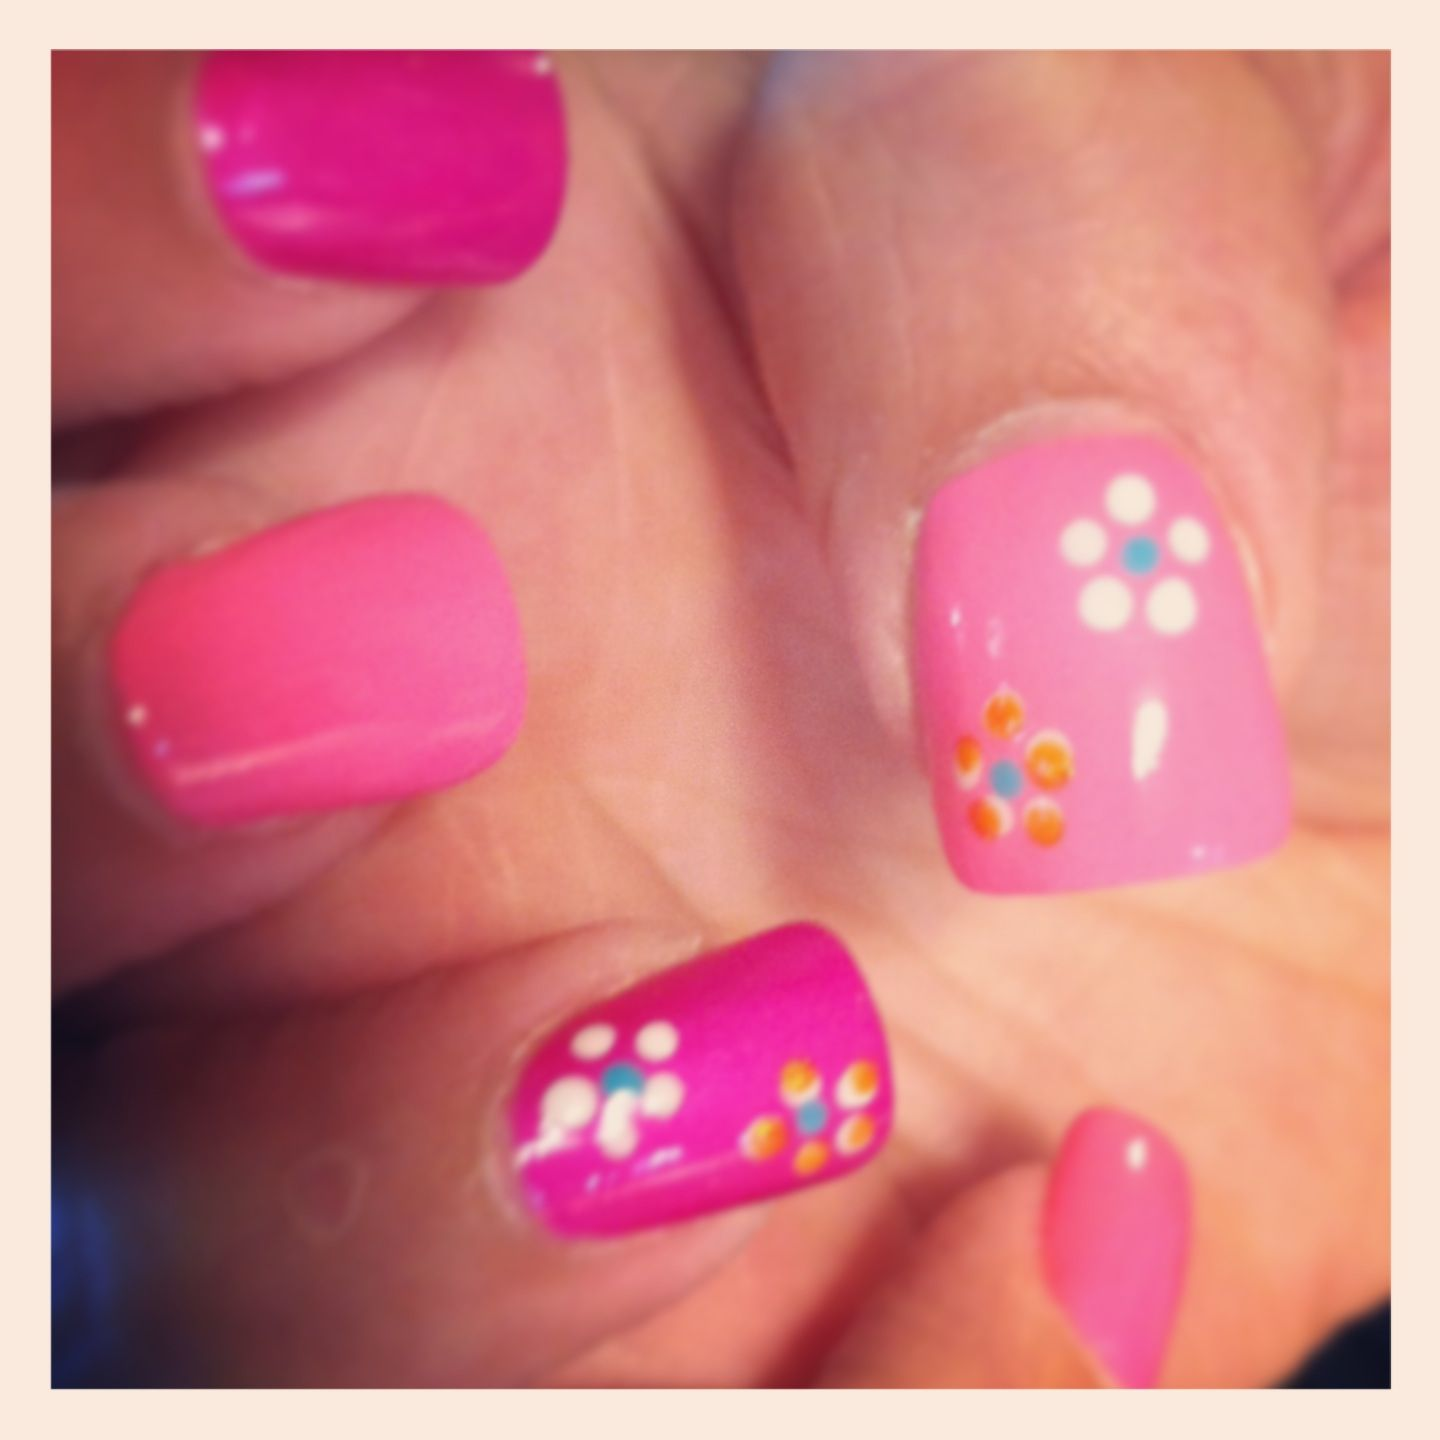 Girlie nails acrylic purple pink white flowers with orange glitter HELLO summertime ;)